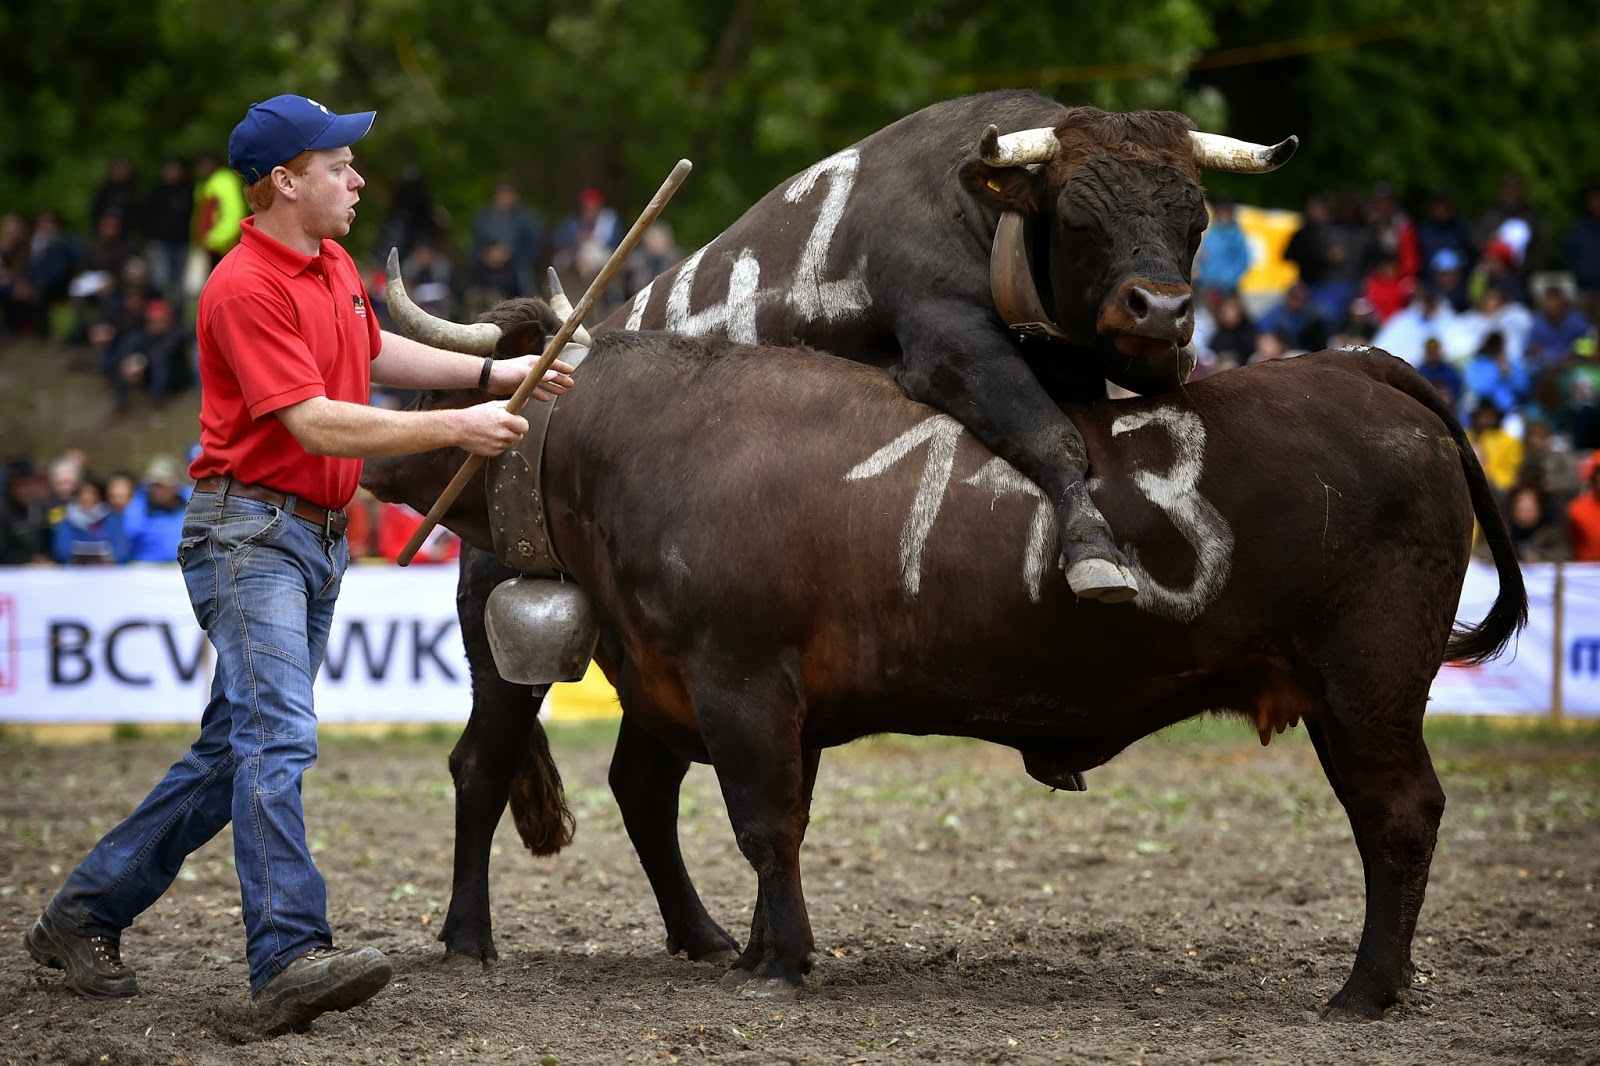 Alpine Pastures, Animals, Animals Competitions, Animals Fight, Aproz, Battle of the Queens, Bullfighting, Cow Fight, Cows, Herens cows, Switzerland,